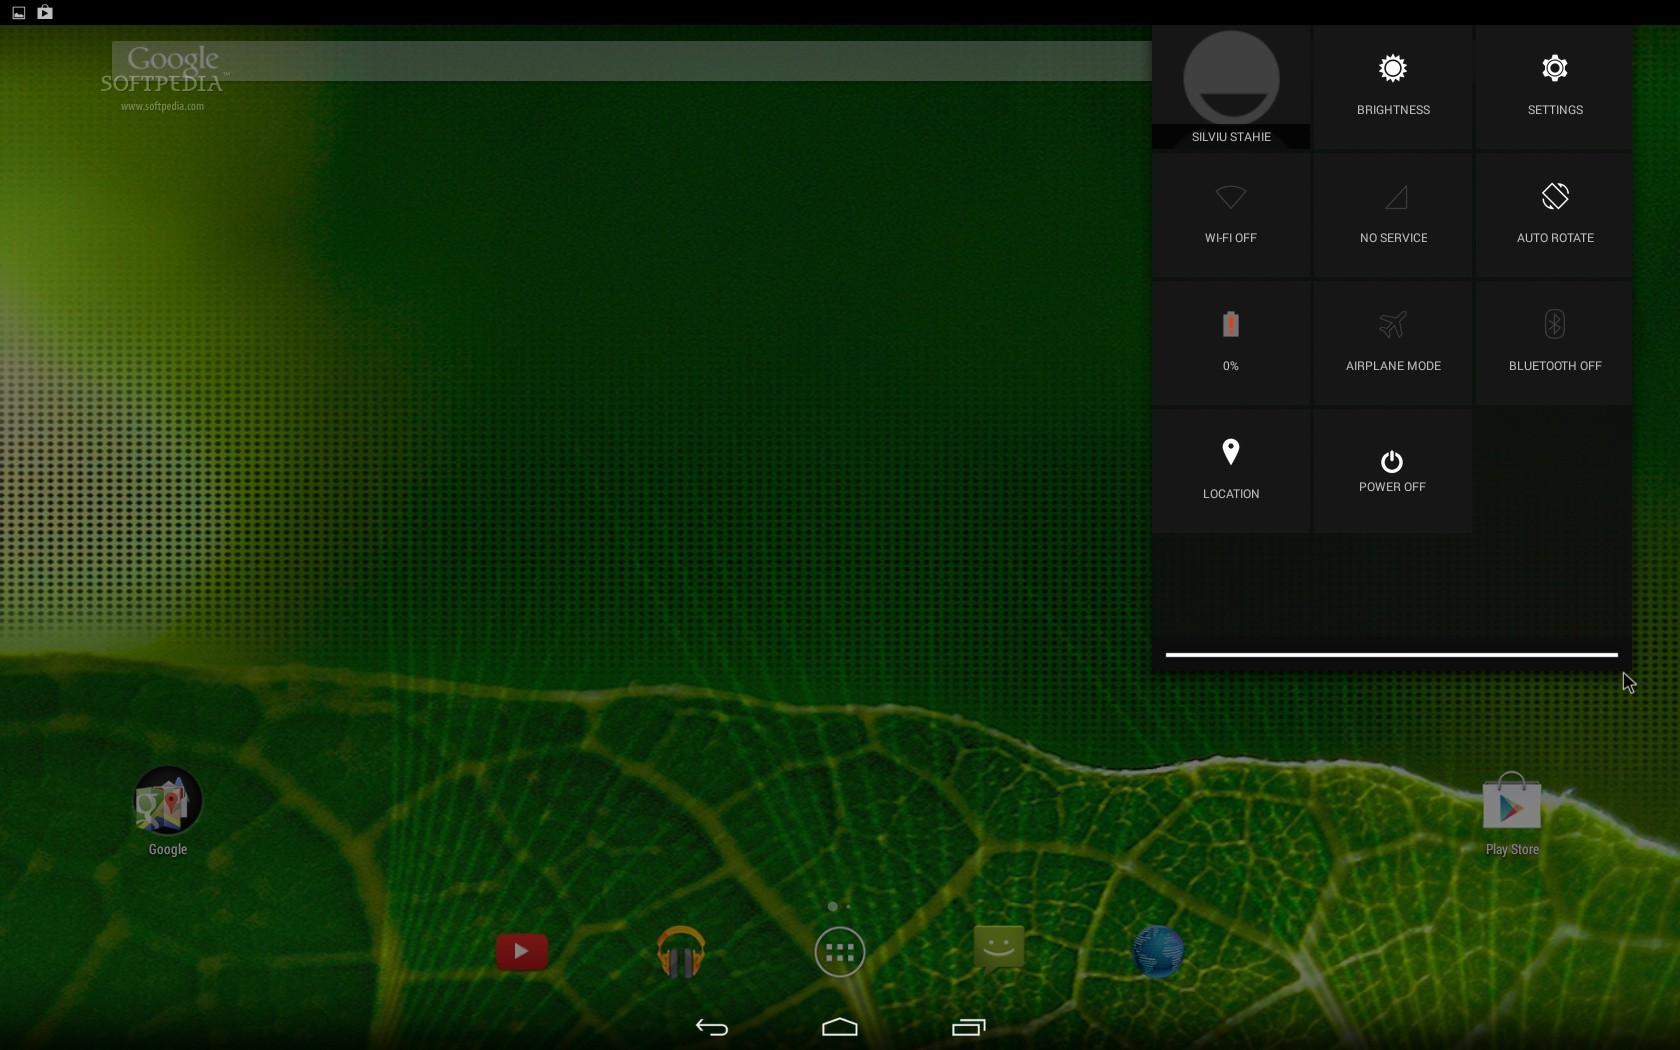 Android-x86 4 4 KitKat Is a Linux OS for PCs Based on Google's